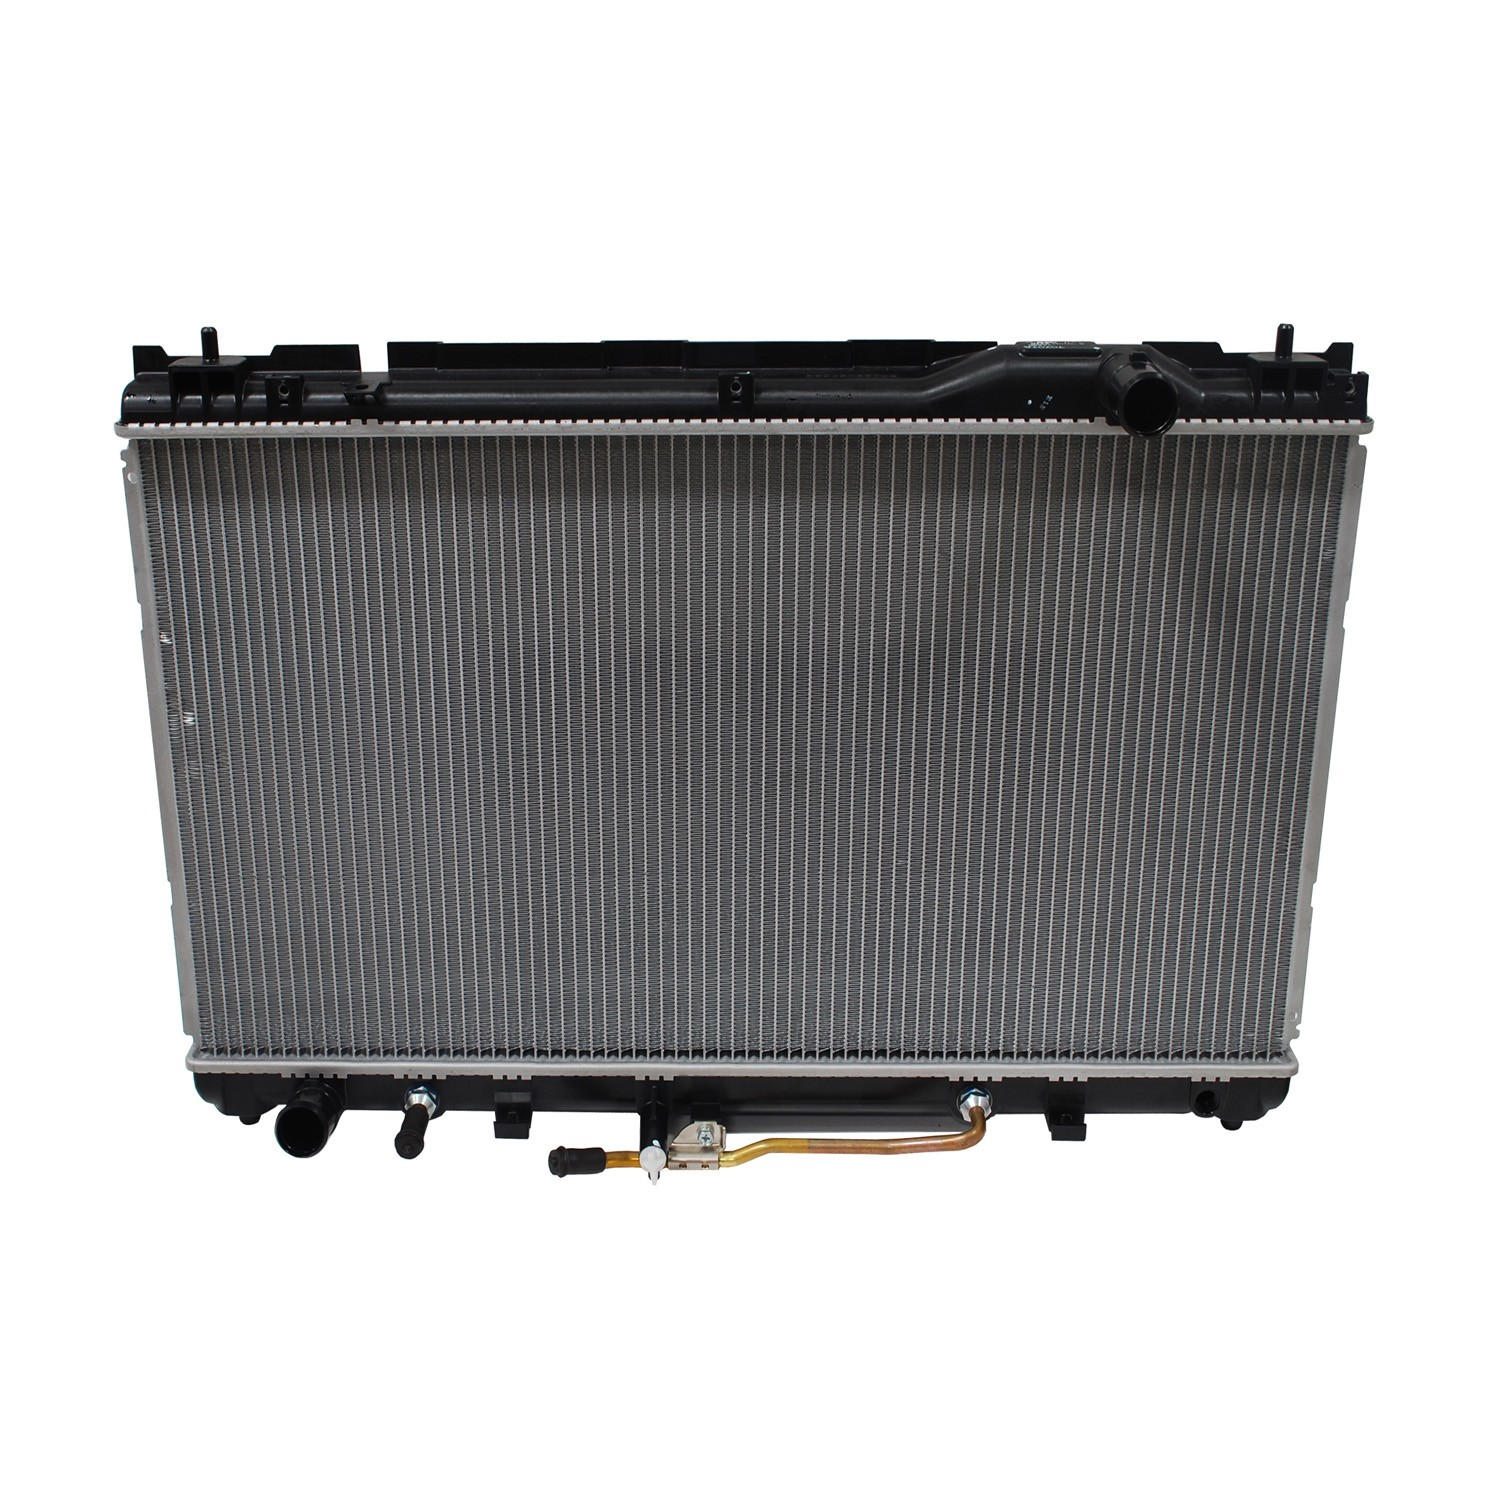 Denso 2210503 Radiator Fits 2002-2006 Toyota Camry 2210503